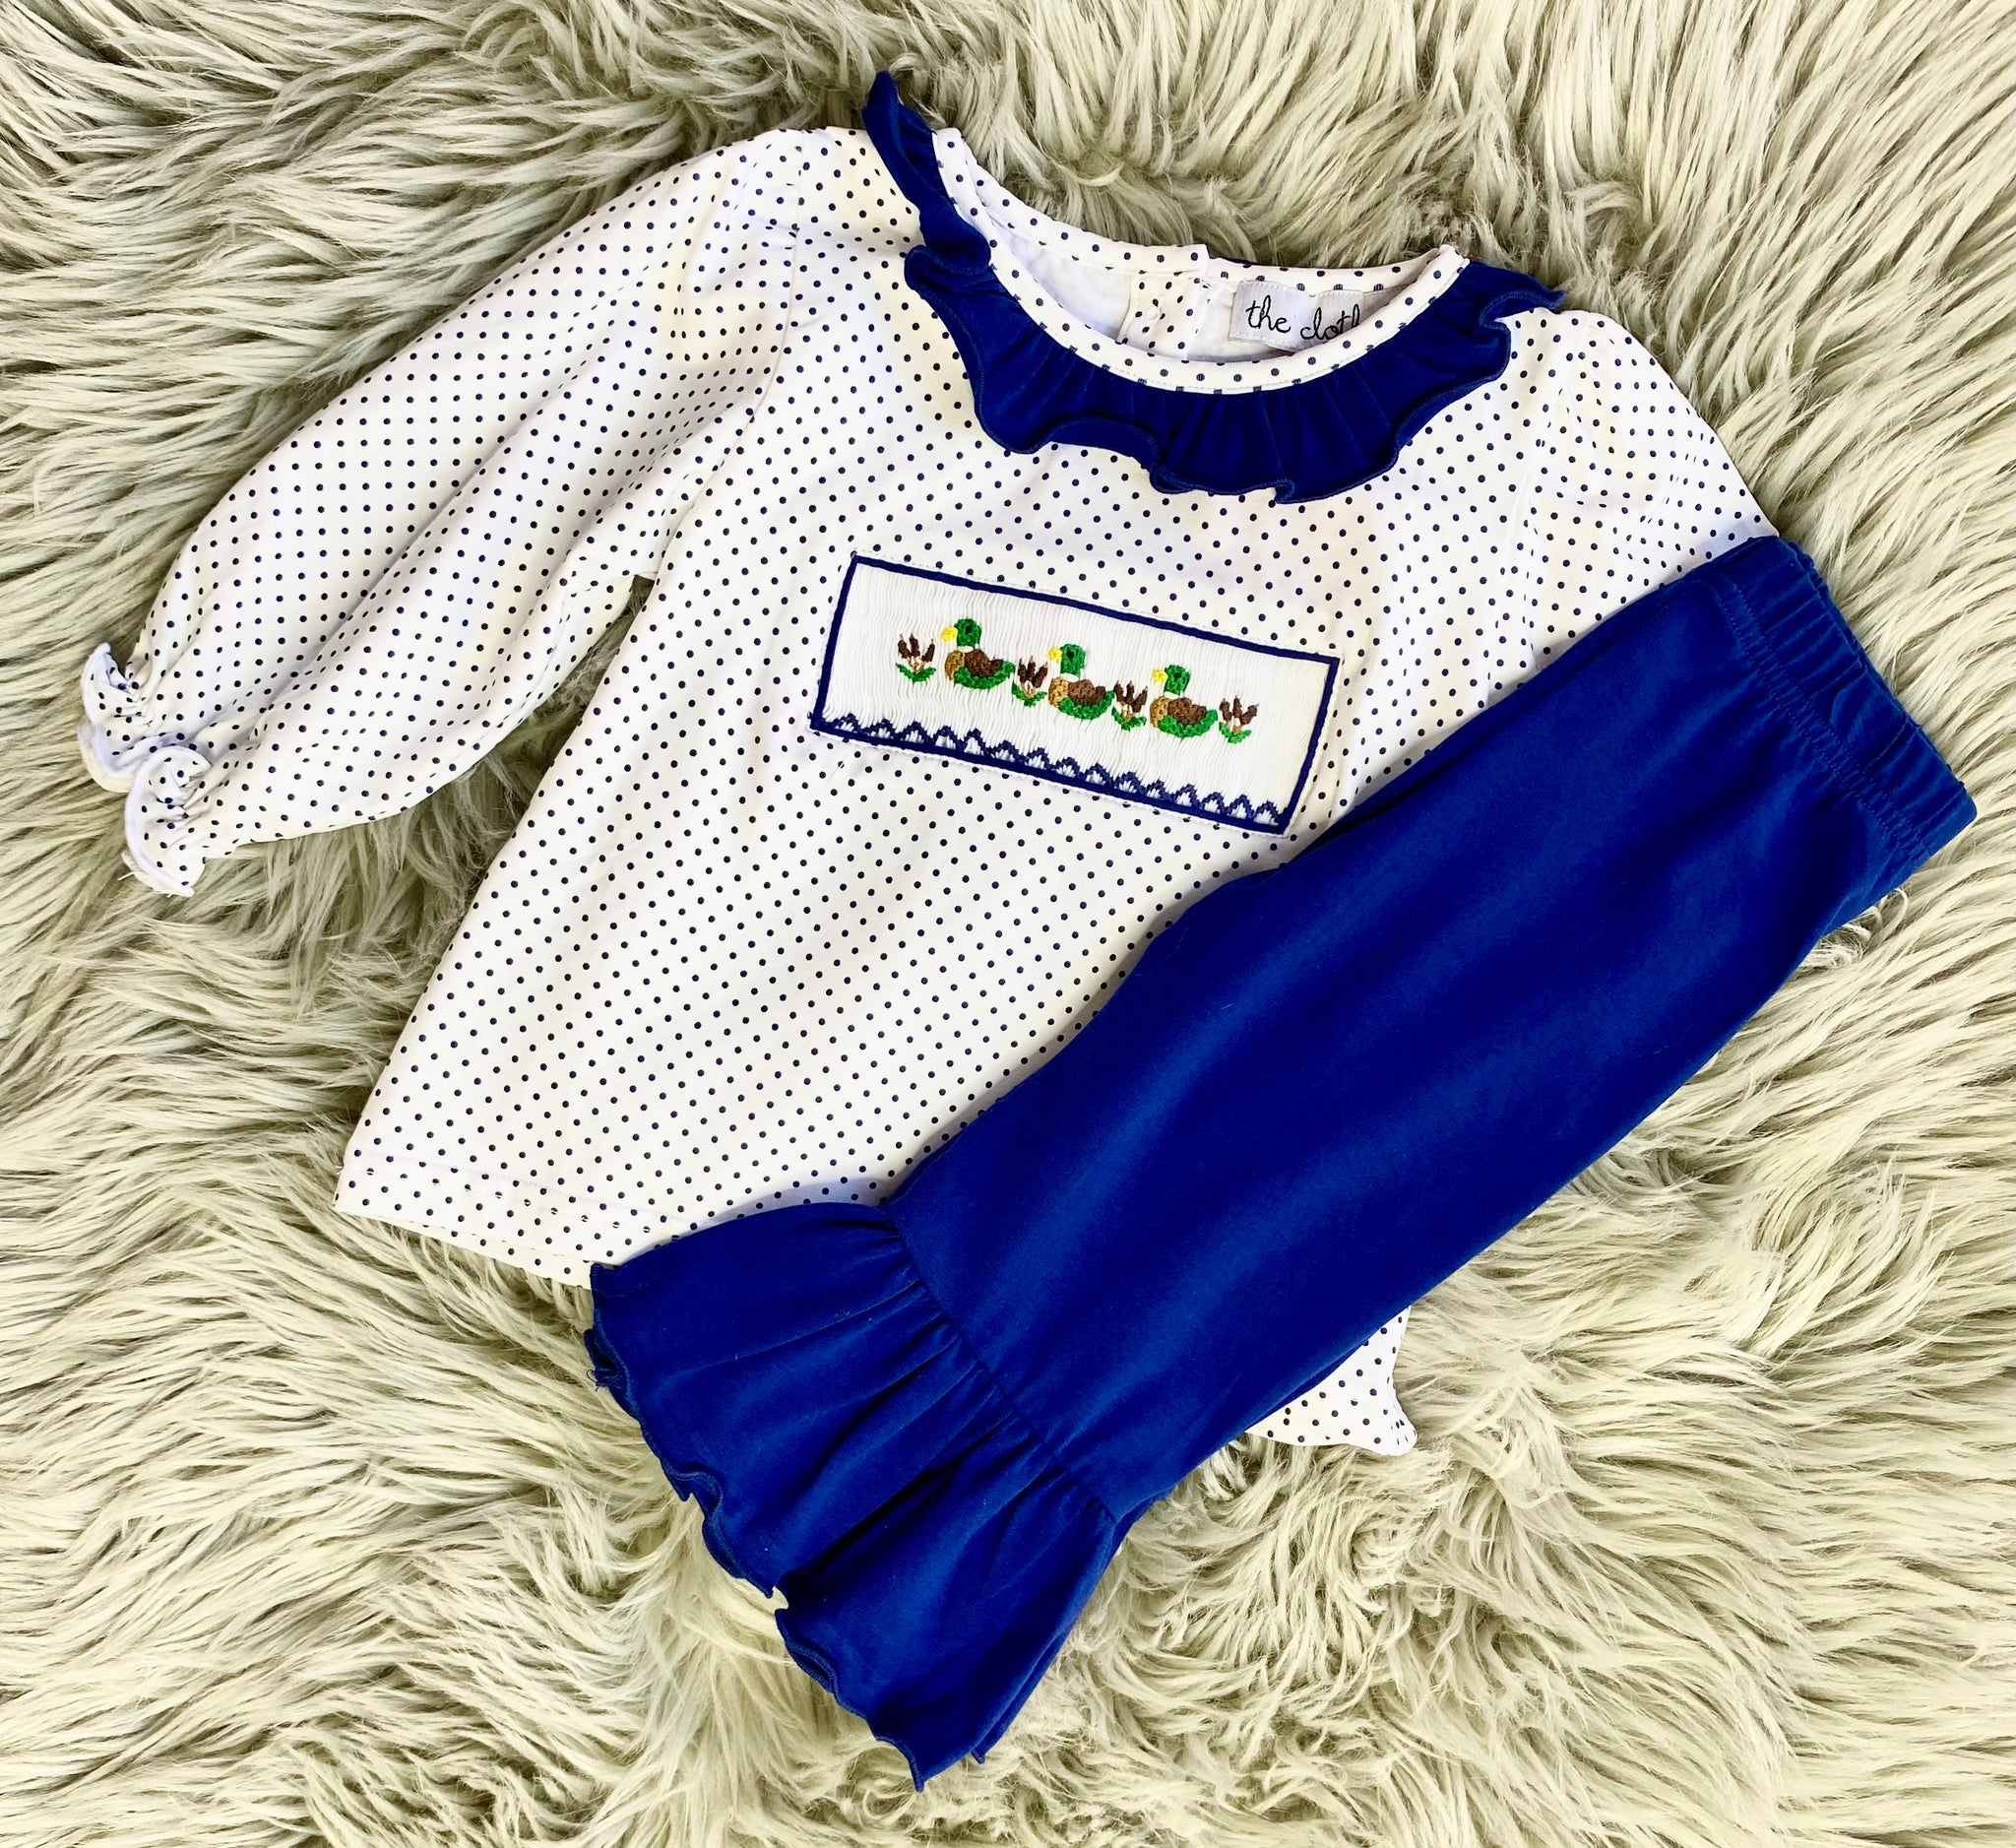 Three Ducks Girls Pants Set